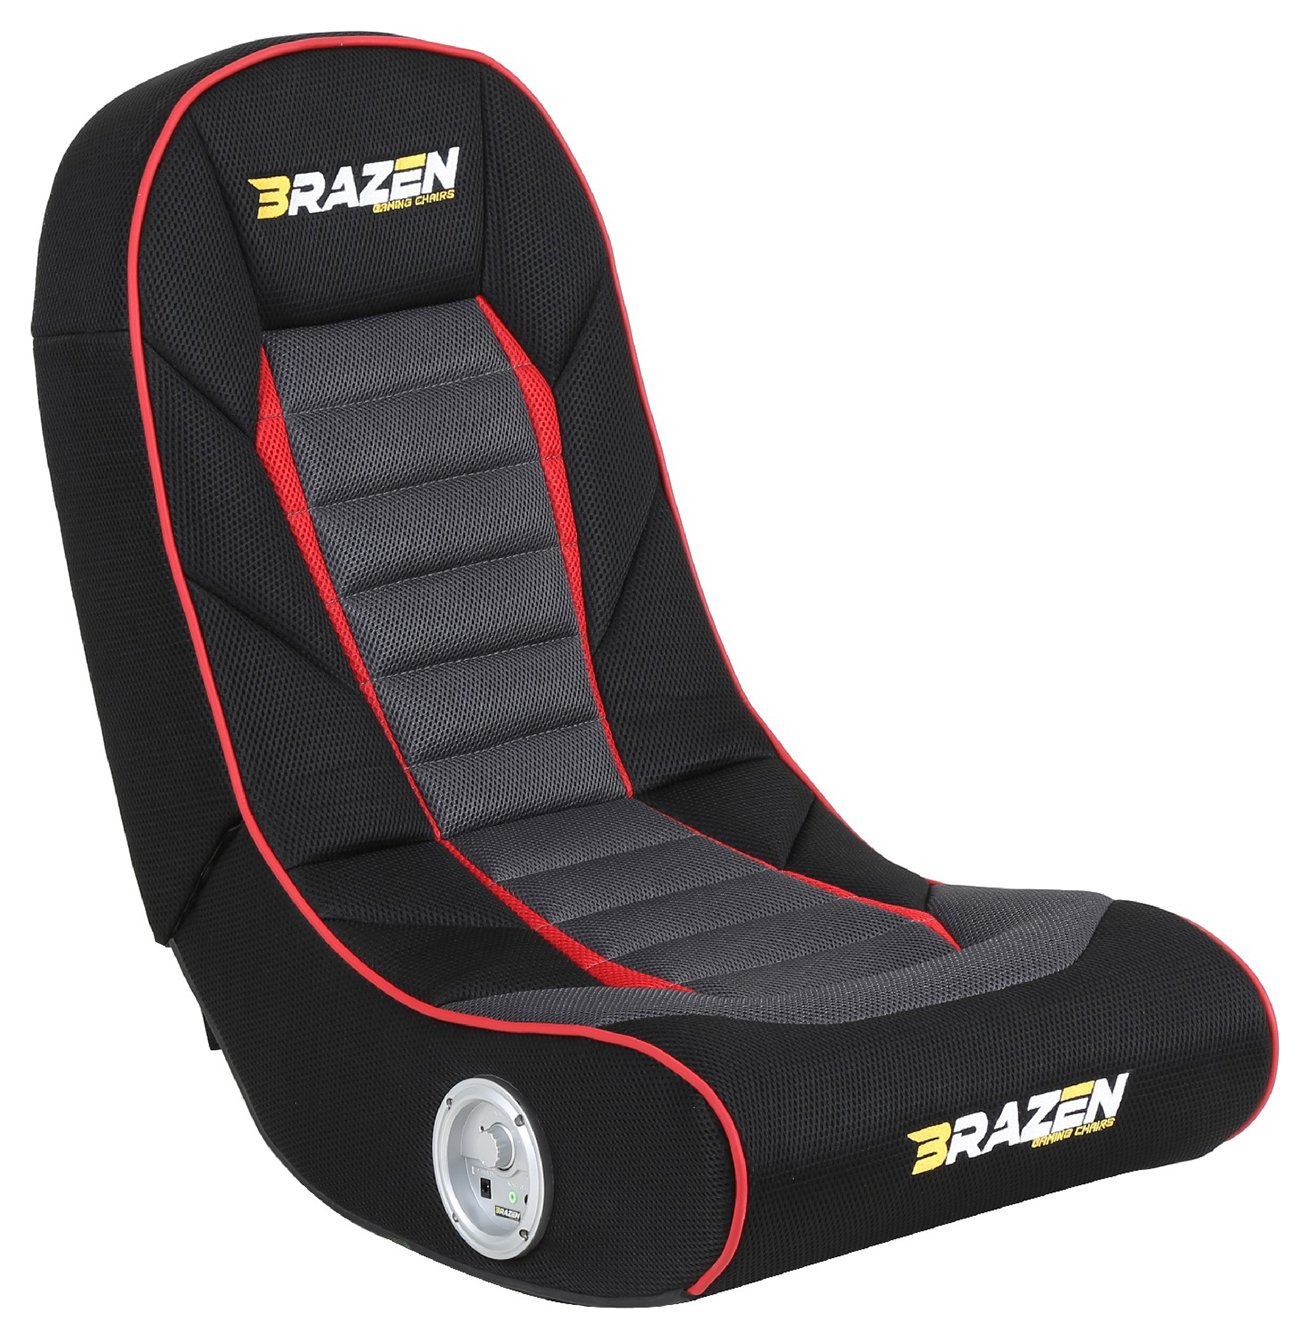 Image of BraZen Sabre Gaming Chair.